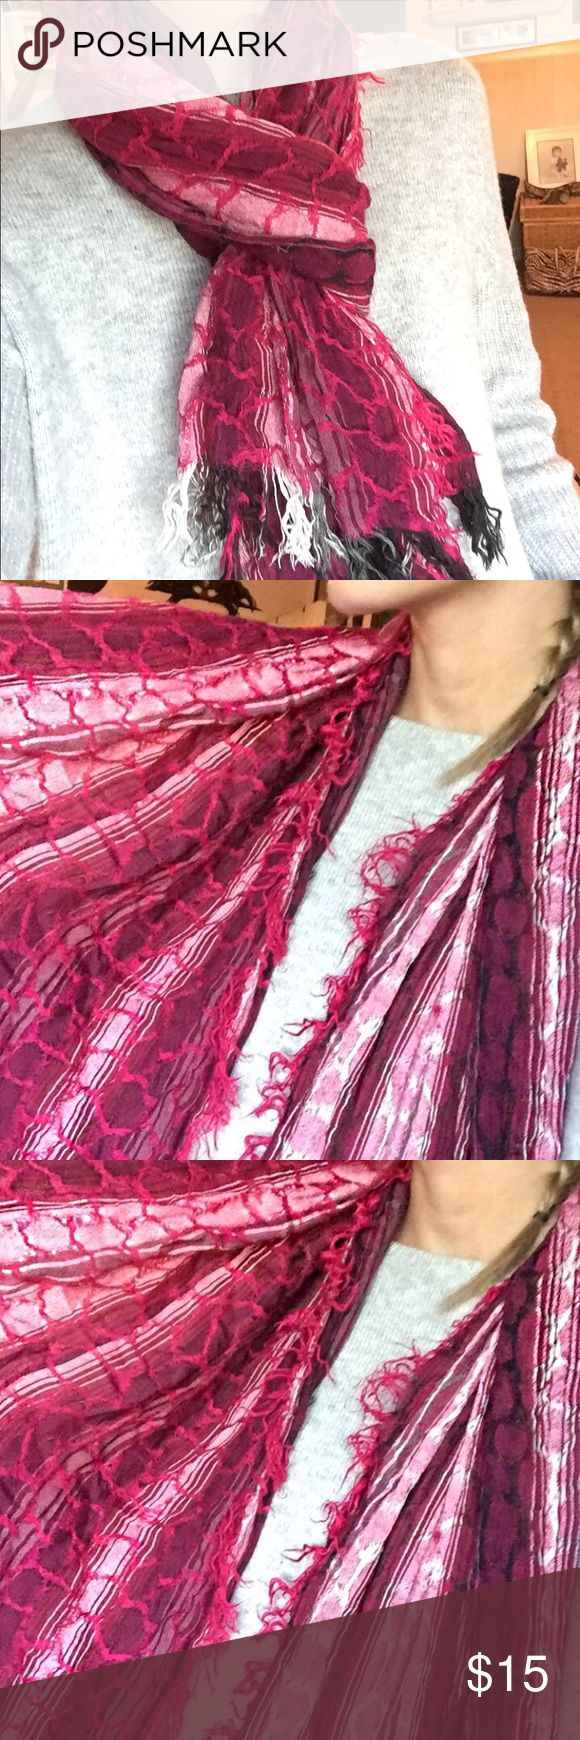 Afghan Scarf Long lightweight beautiful scarf 💕 Accessories Scarves & Wraps